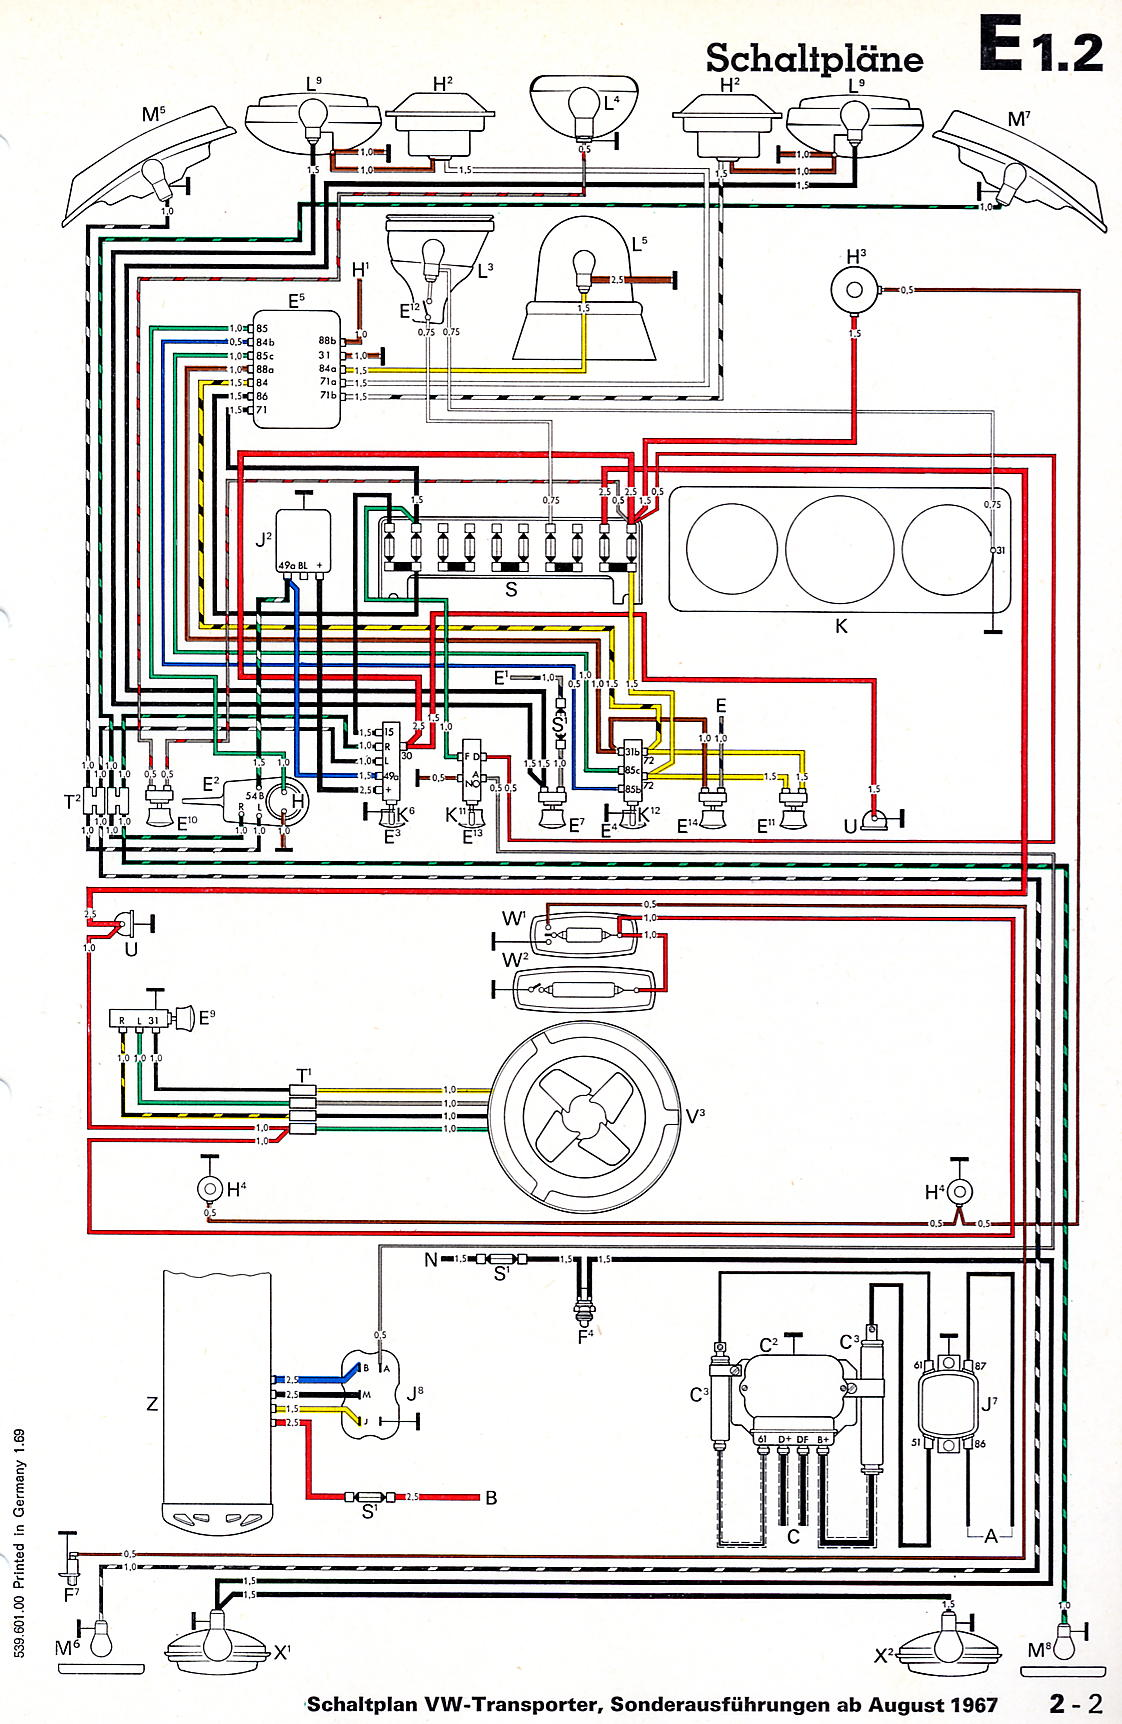 Transporter_from_August_1967_aditional_items vintagebus com vw bus (and other) wiring diagrams vw wiring diagrams at gsmx.co